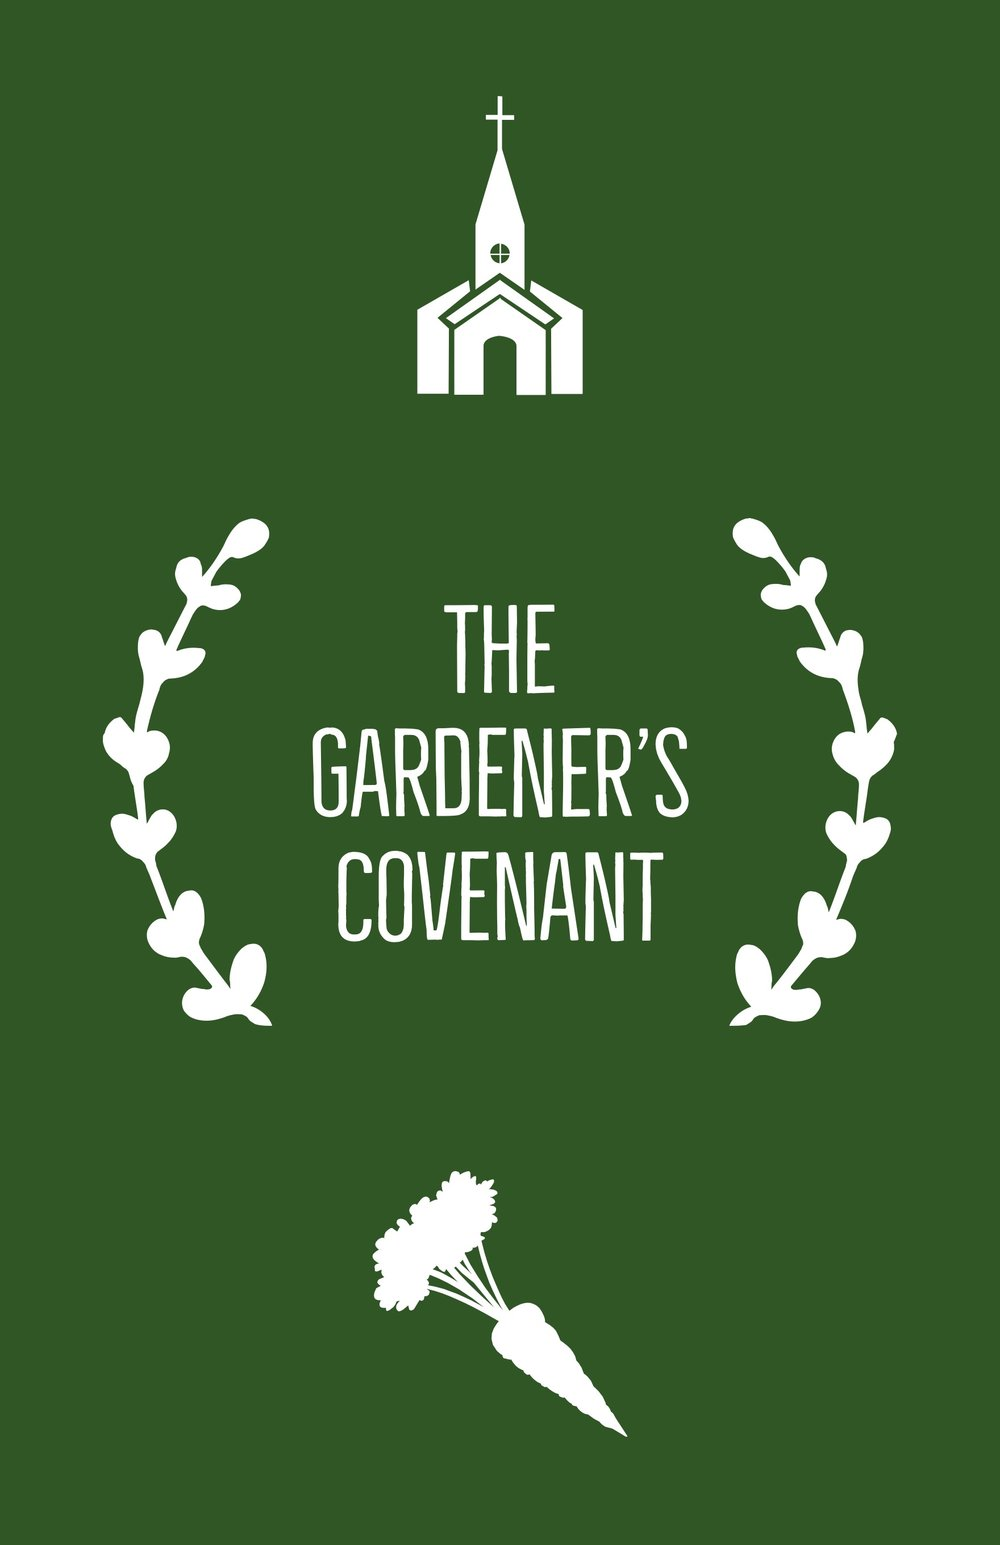 The Gardener's Covenant.JPG